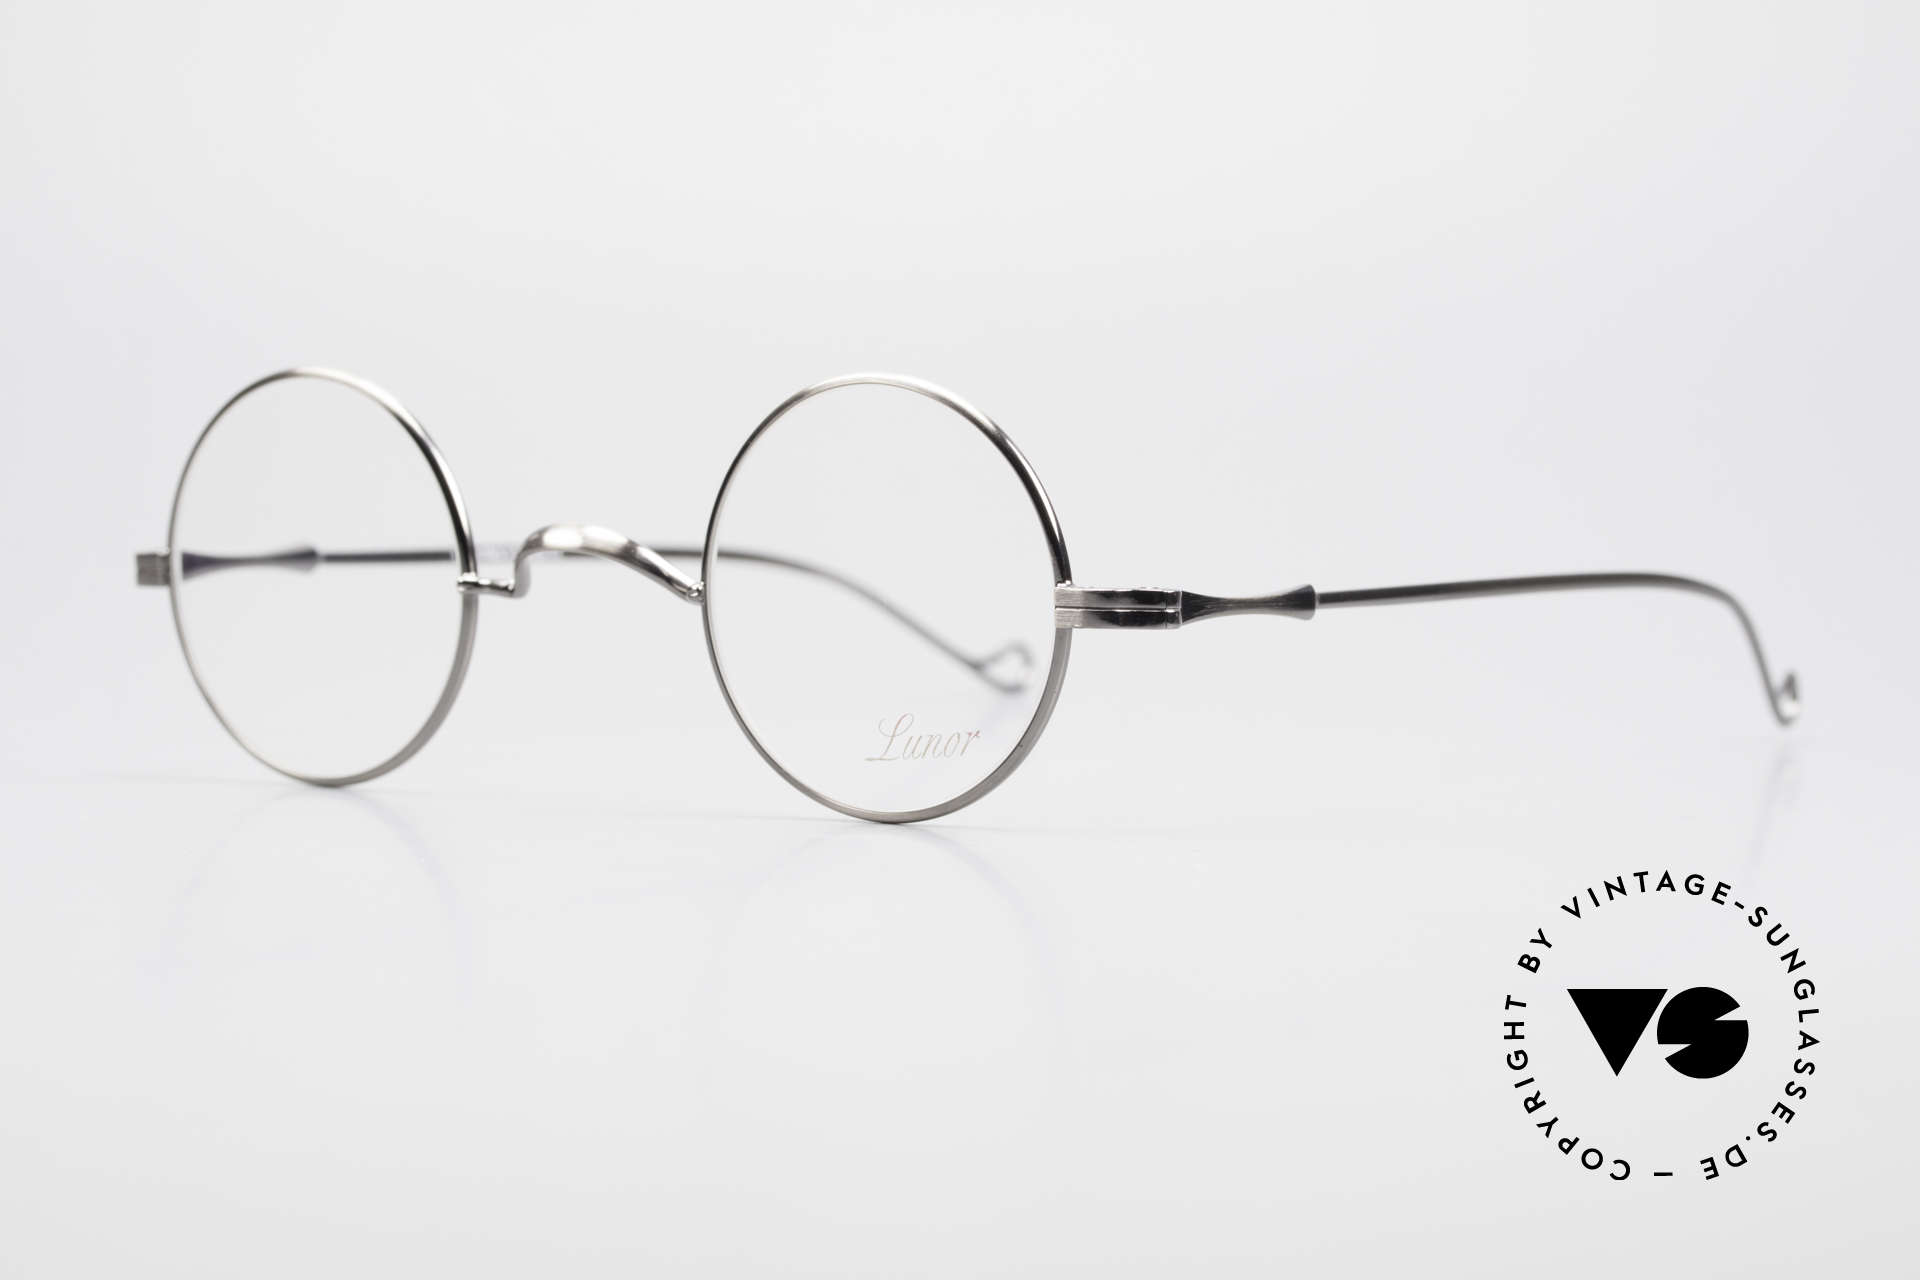 """Lunor II 12 Small Round Luxury Glasses, well-known for the """"W-bridge"""" & the plain frame designs, Made for Men and Women"""